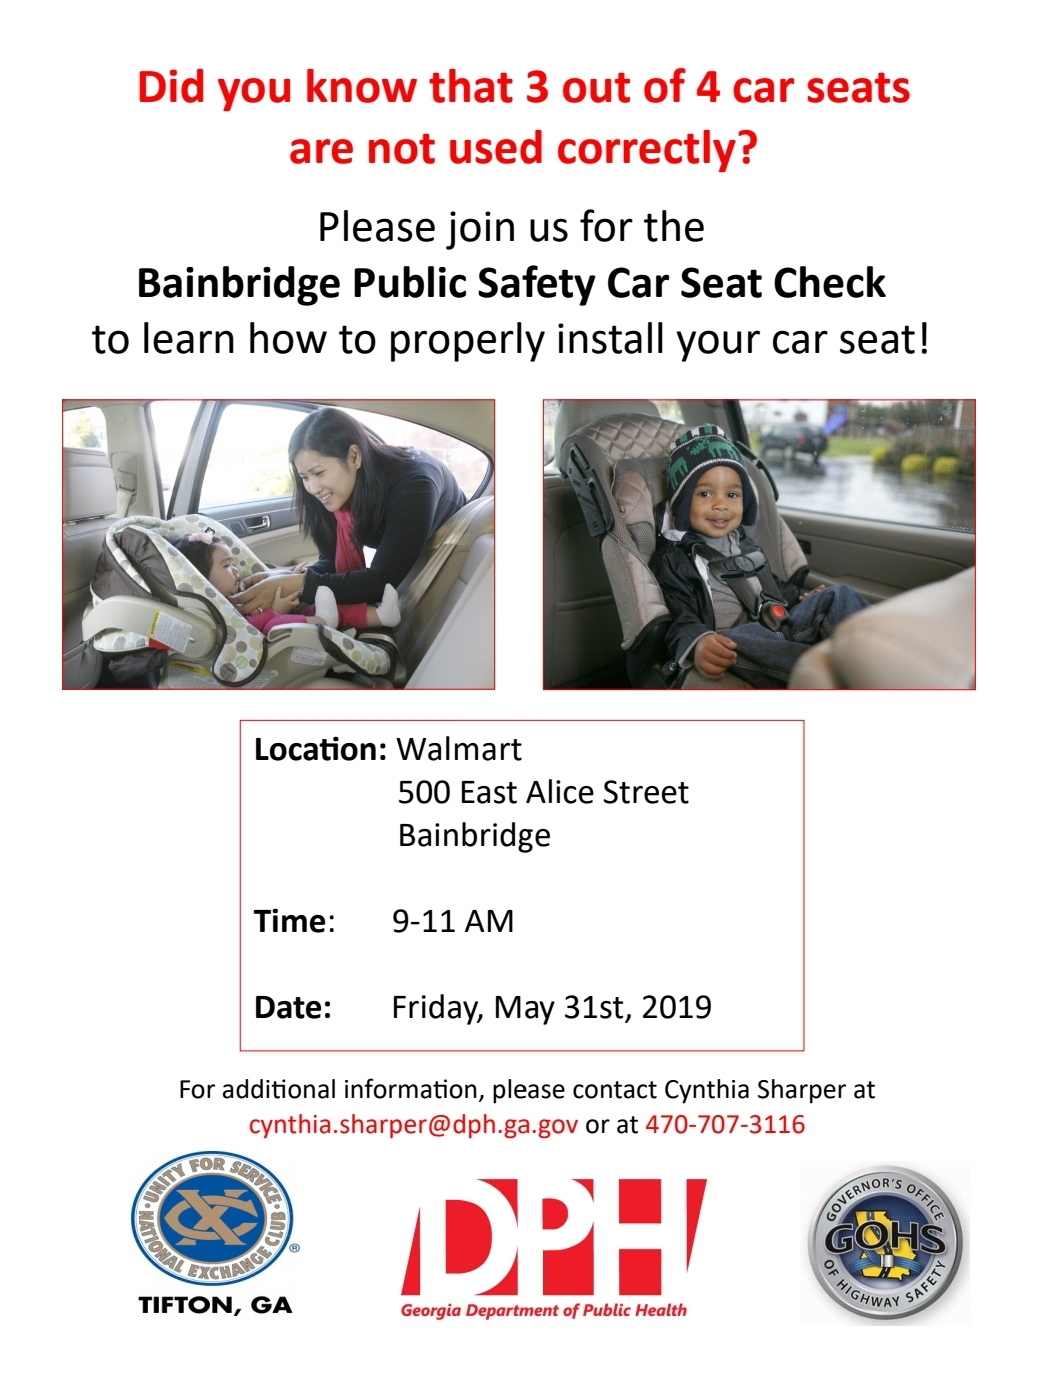 Bainbridge Public Safety Will Be Offering A Free Child Car Seat Check On Friday May 31 From 9AM To 11AM At Walmart